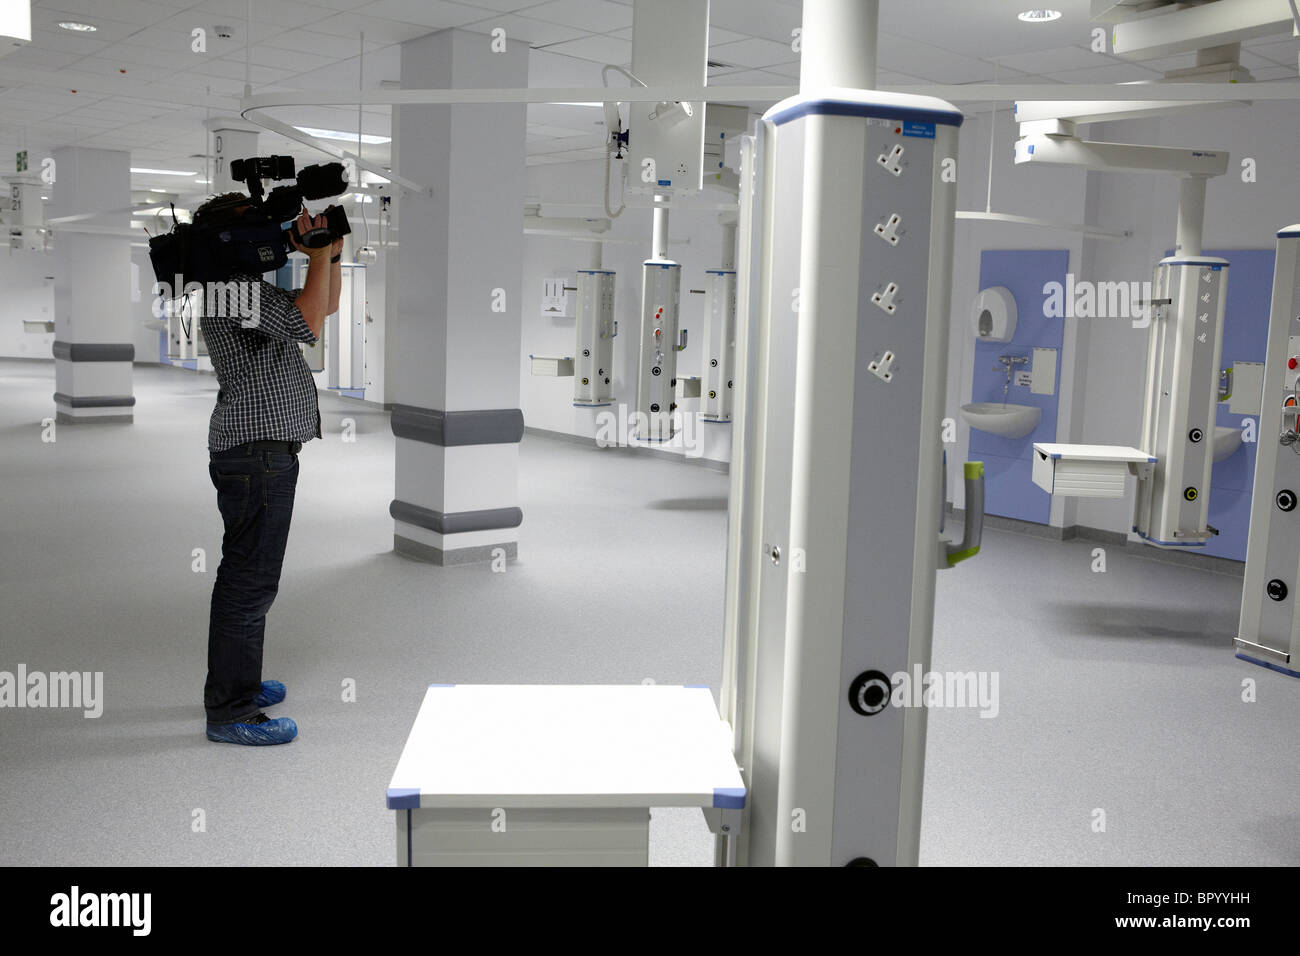 A television cameraman films inside a new hospital for TV news. - Stock Image